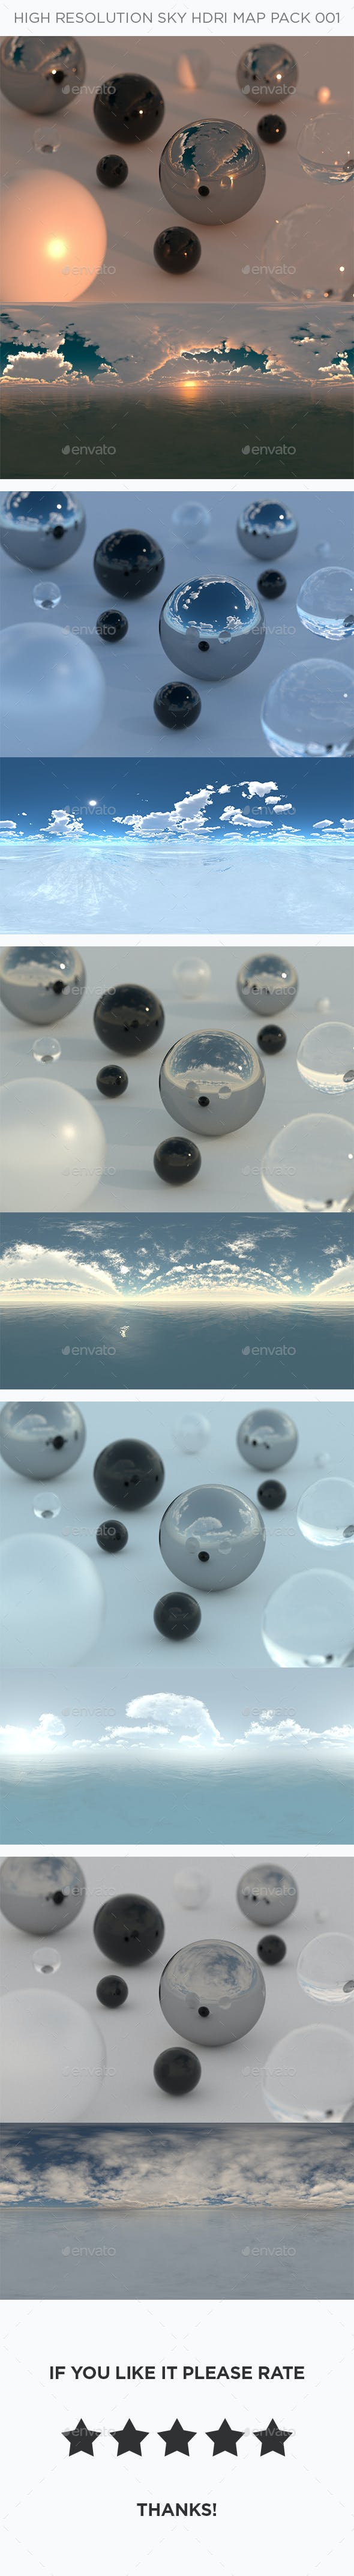 5 High Resolution Sky HDRi Maps Pack 001 - 3DOcean Item for Sale